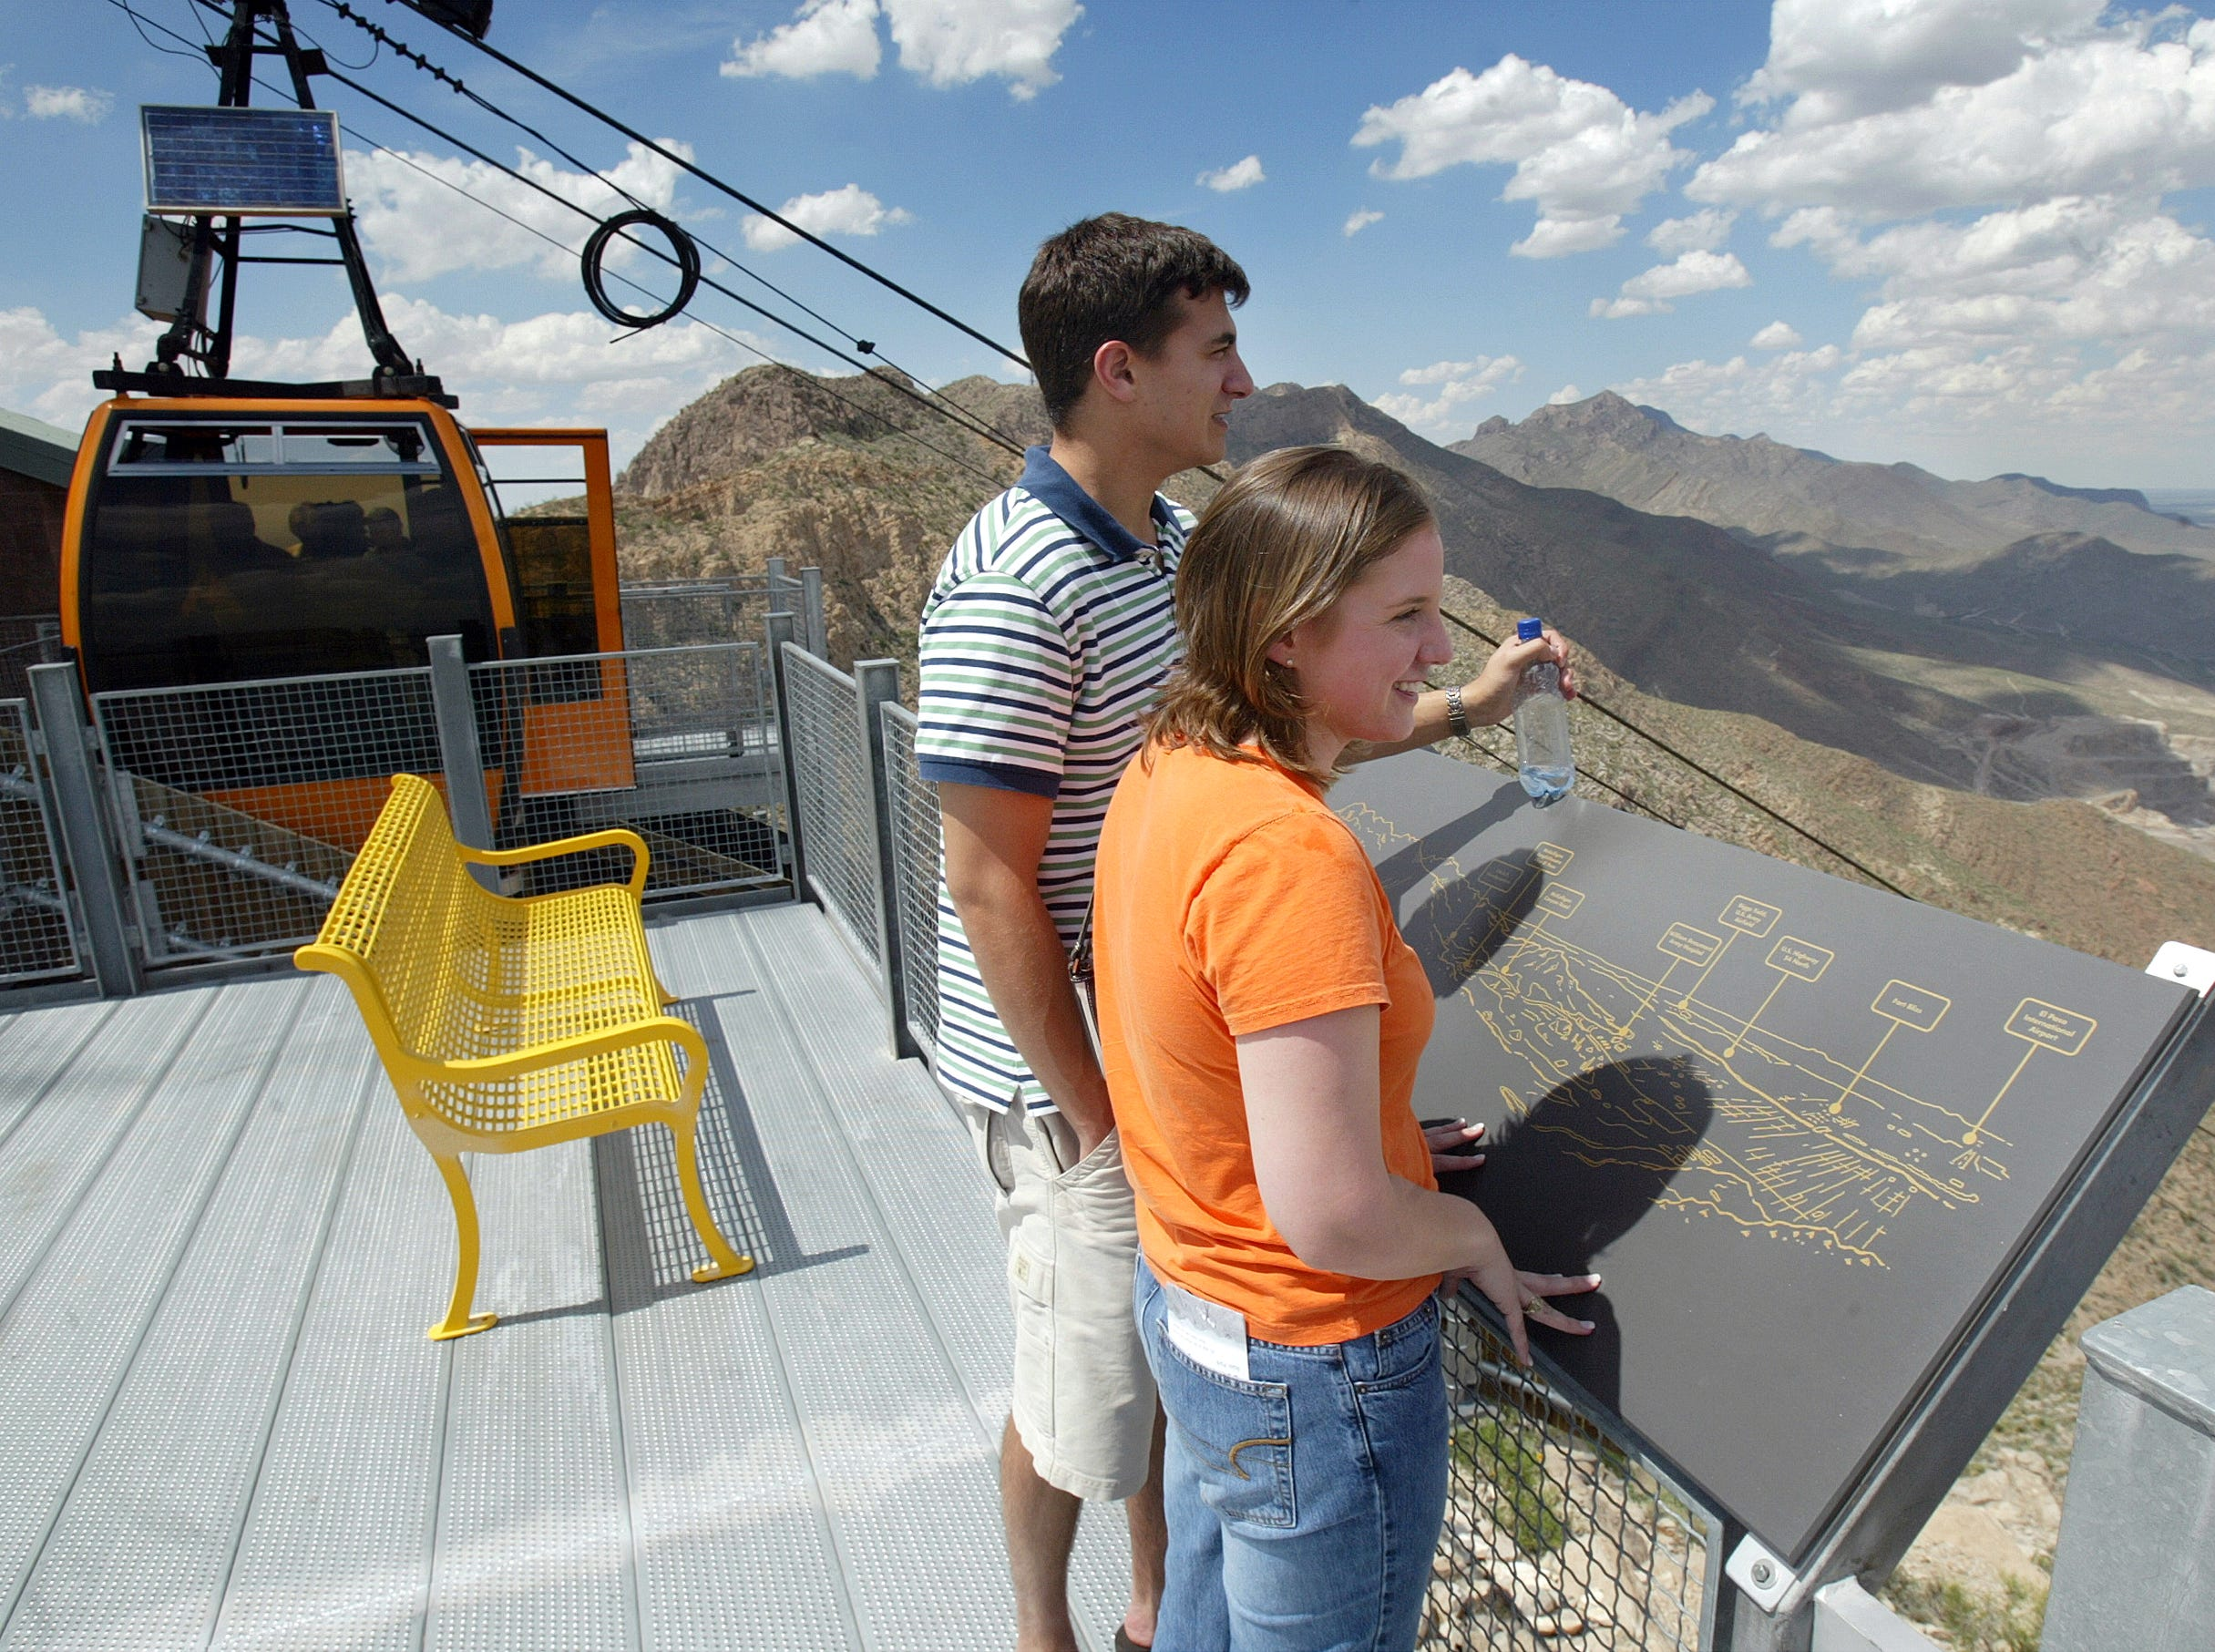 Brette Peyton and David Alexander look out over El Paso atop Ranger Peak via the Wyler Aerial Tramway.